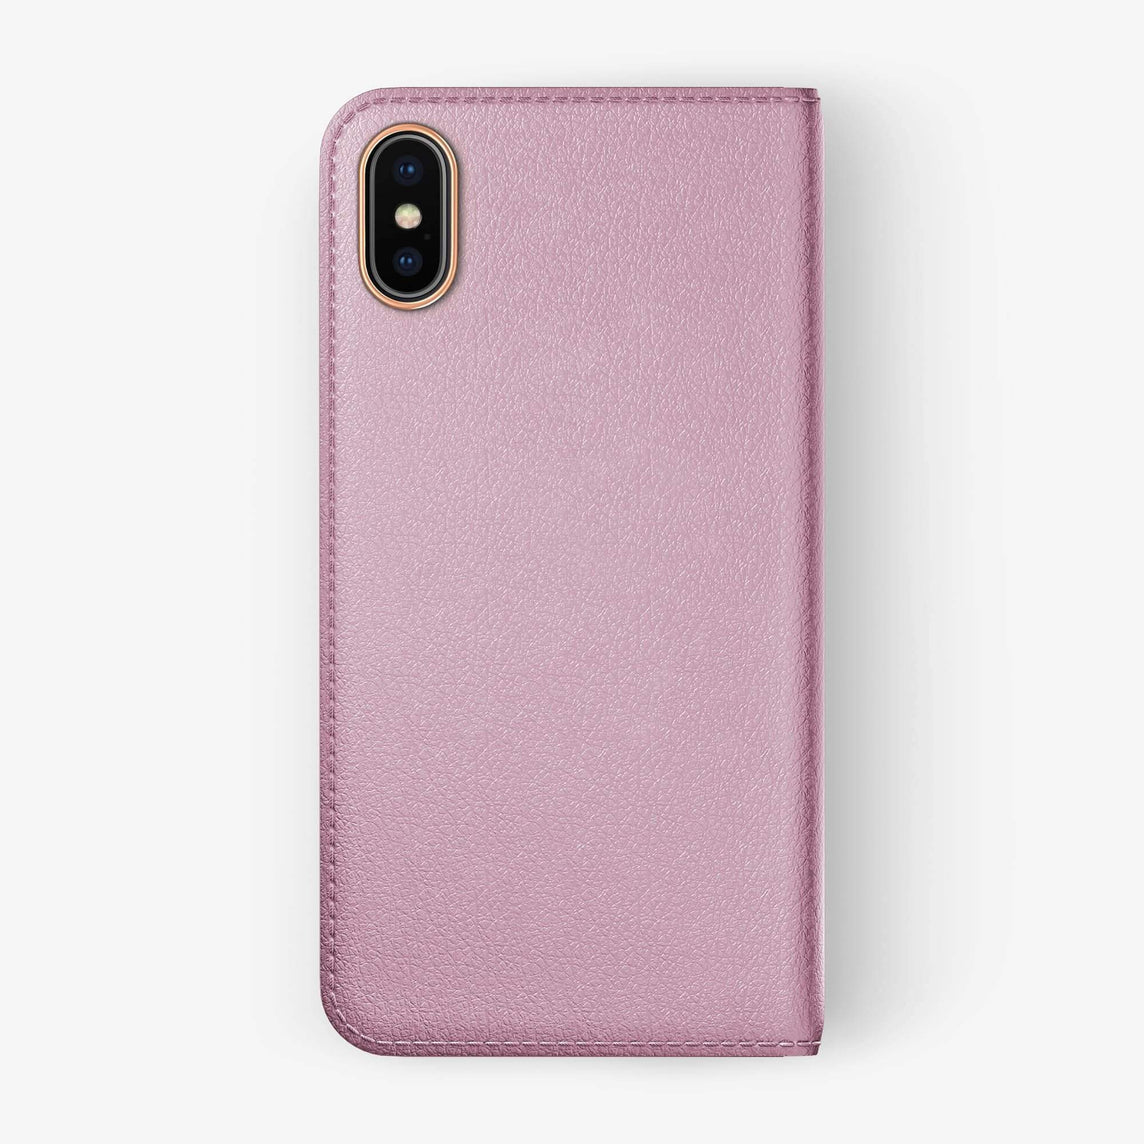 Pink Calfskin iPhone Folio Case for iPhone XS Max finishing rose gold - Hadoro Luxury Cases - img5